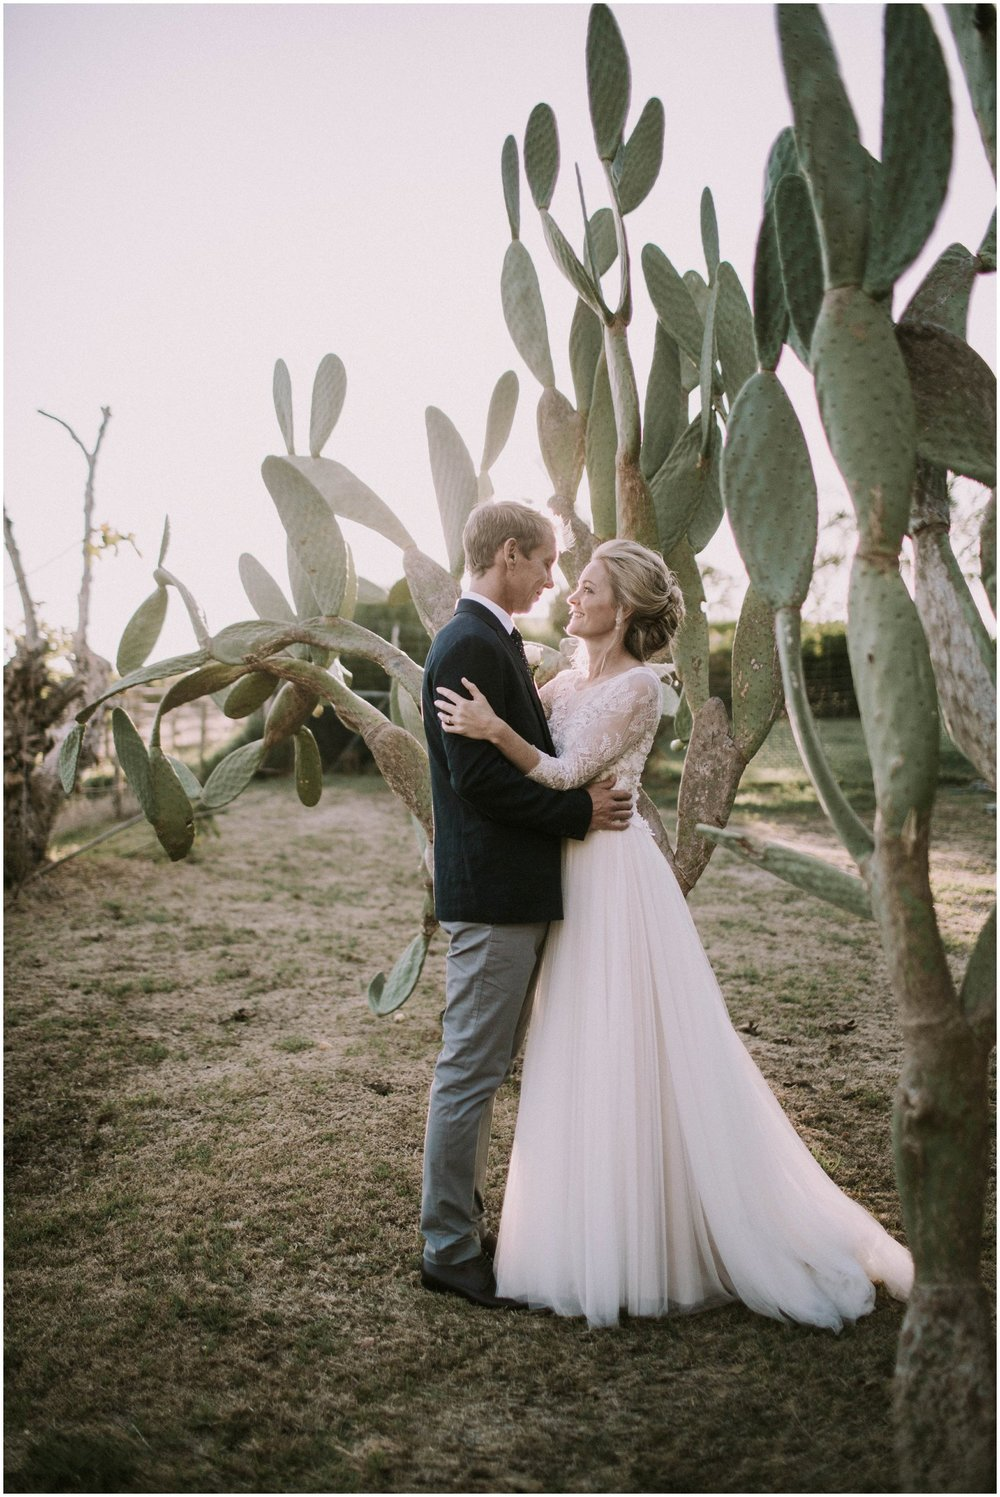 Top Wedding Photographer Cape Town South Africa Artistic Creative Documentary Wedding Photography Rue Kruger_0741.jpg